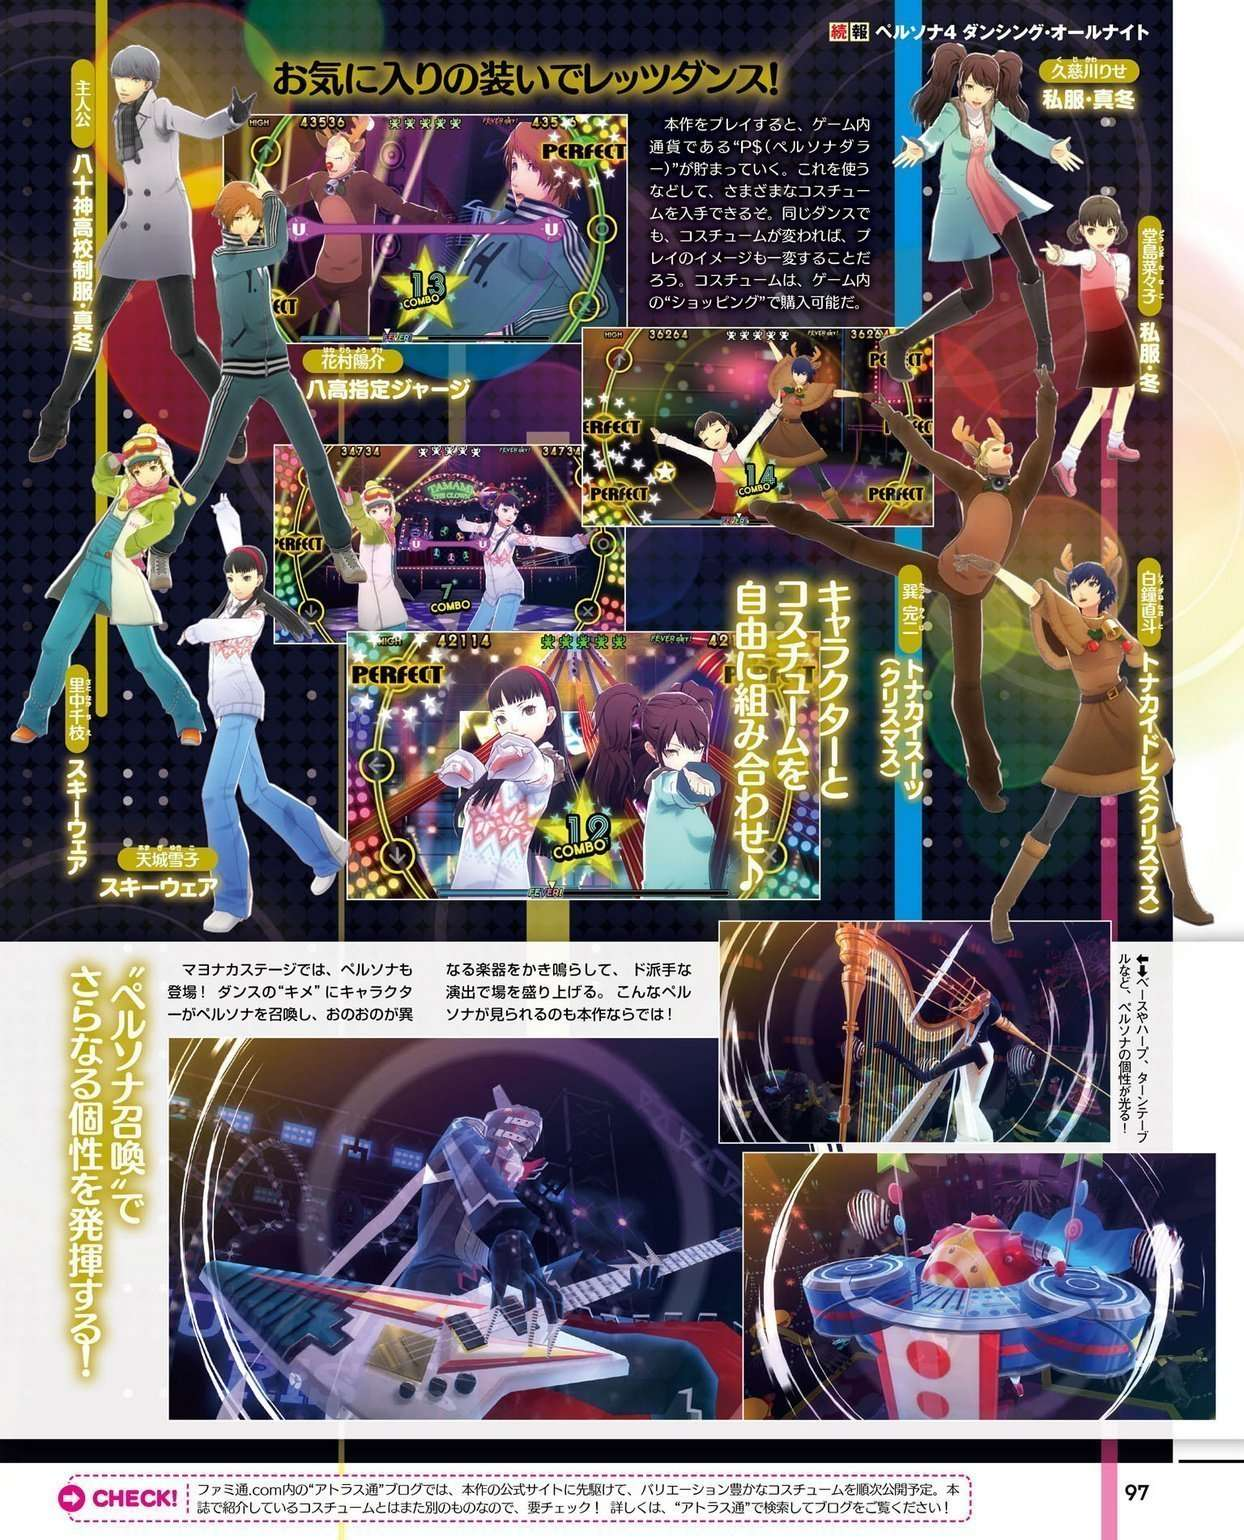 Persona 4: Dancing All Night Scans - Costumes